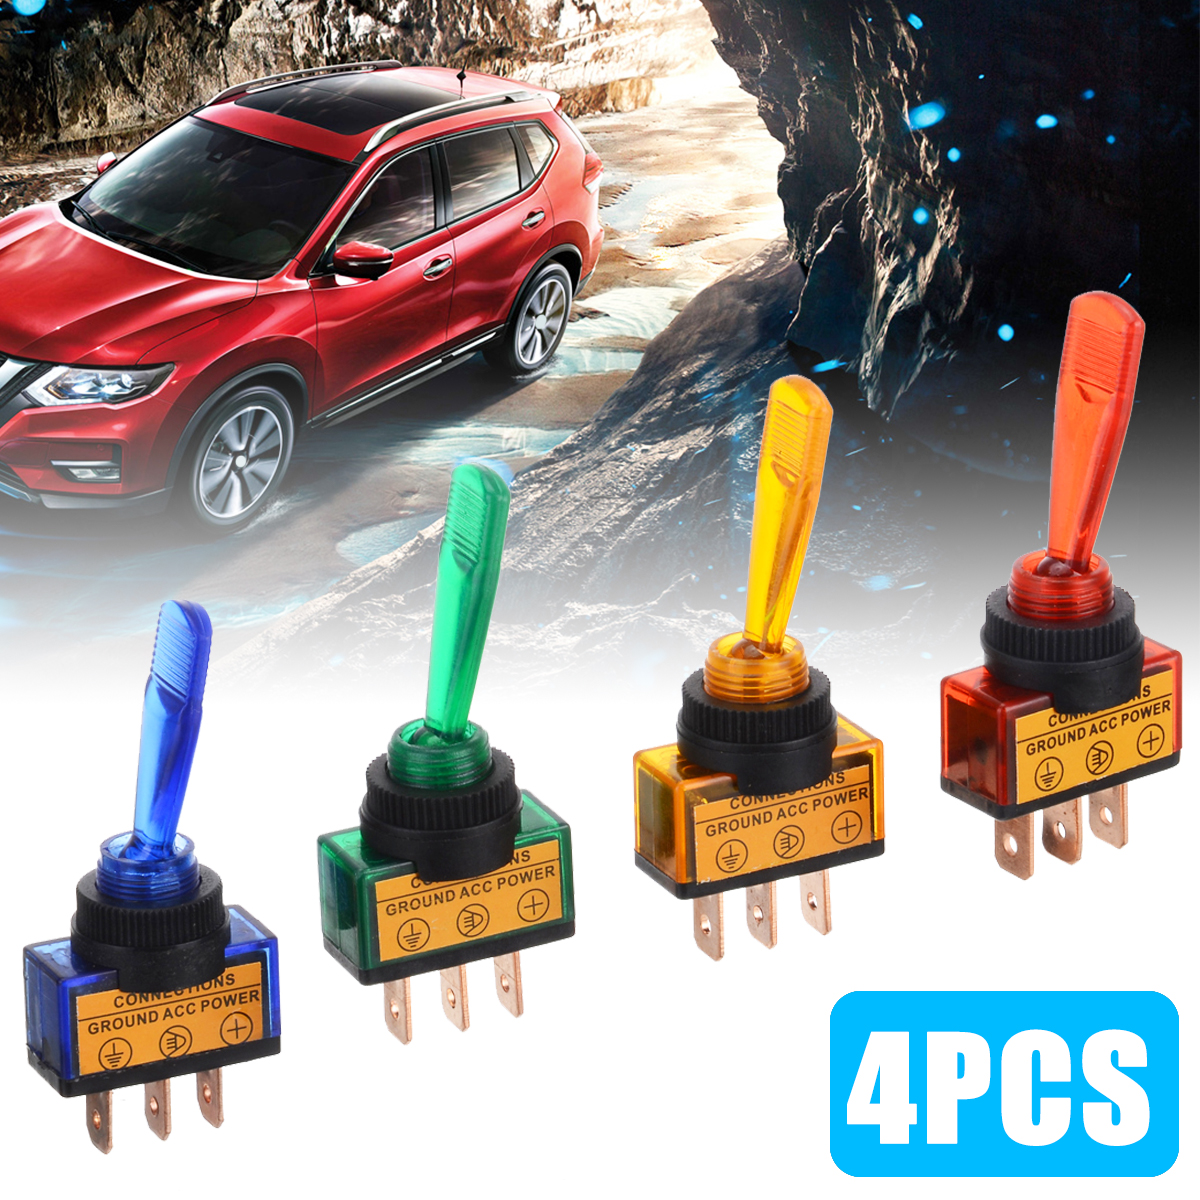 Hot Sale 4Pcs/set Rocker Switch Toggle 3 Pin On/Off SPST DC 12V 20A Switches For Car Boat Truck